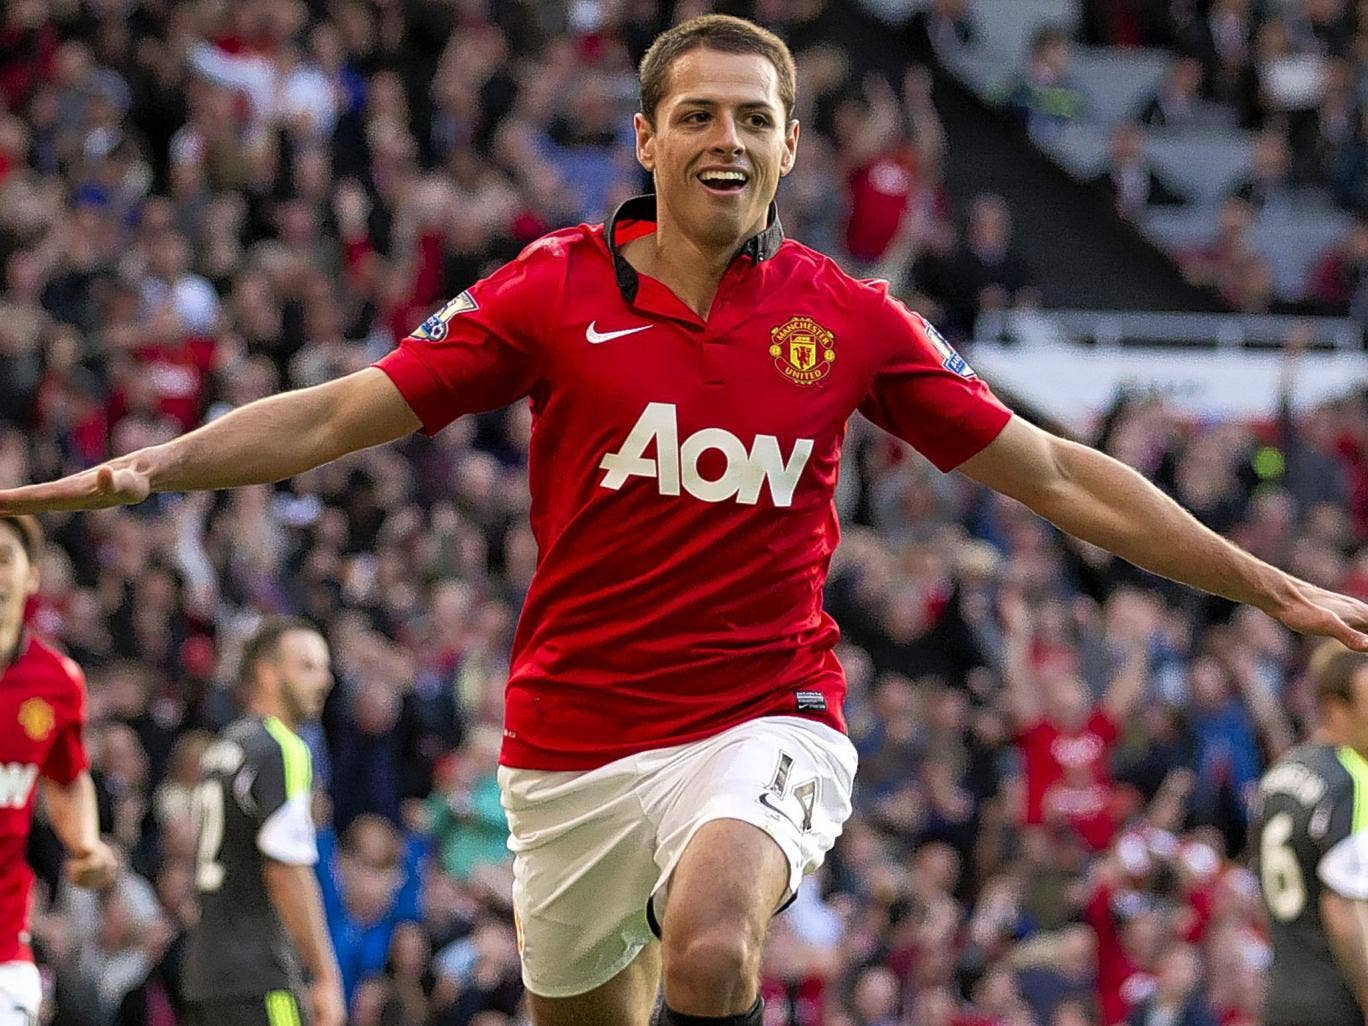 Cleared for take-off: Javier Hernandez scores Manchester United's late winner against Stoke City yesterday which David Moyes hopes will help kick-start the team's Premier League season